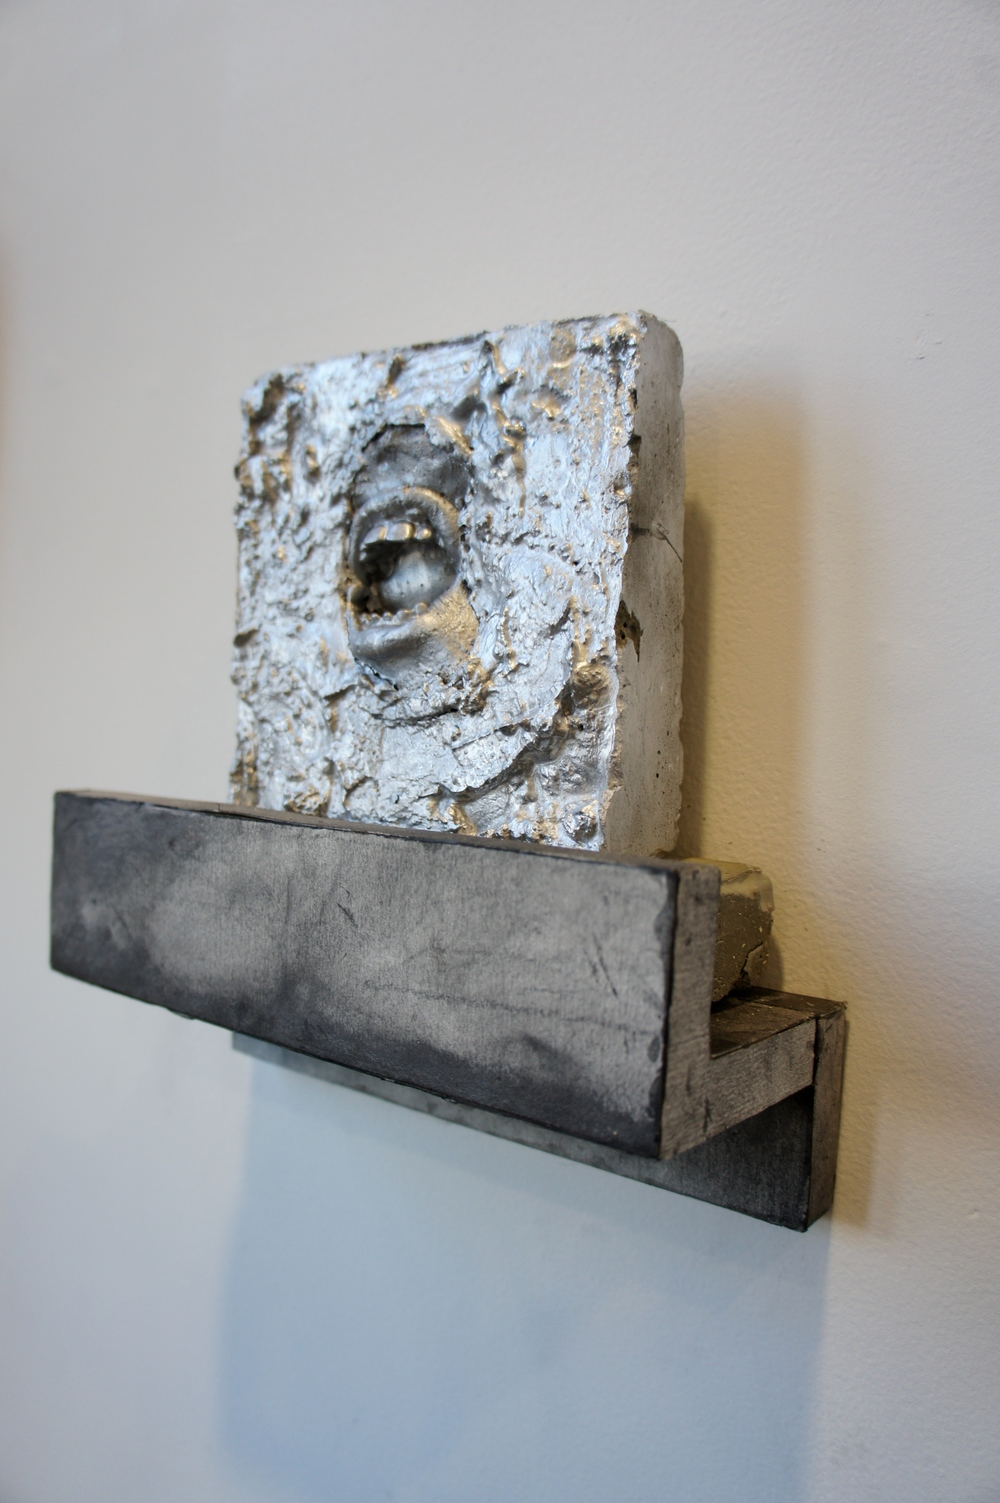 Kill Your Idols , 2015. Cement, silicone, wood, graphite on paper. Approximately 8 x 8 x 3 in.